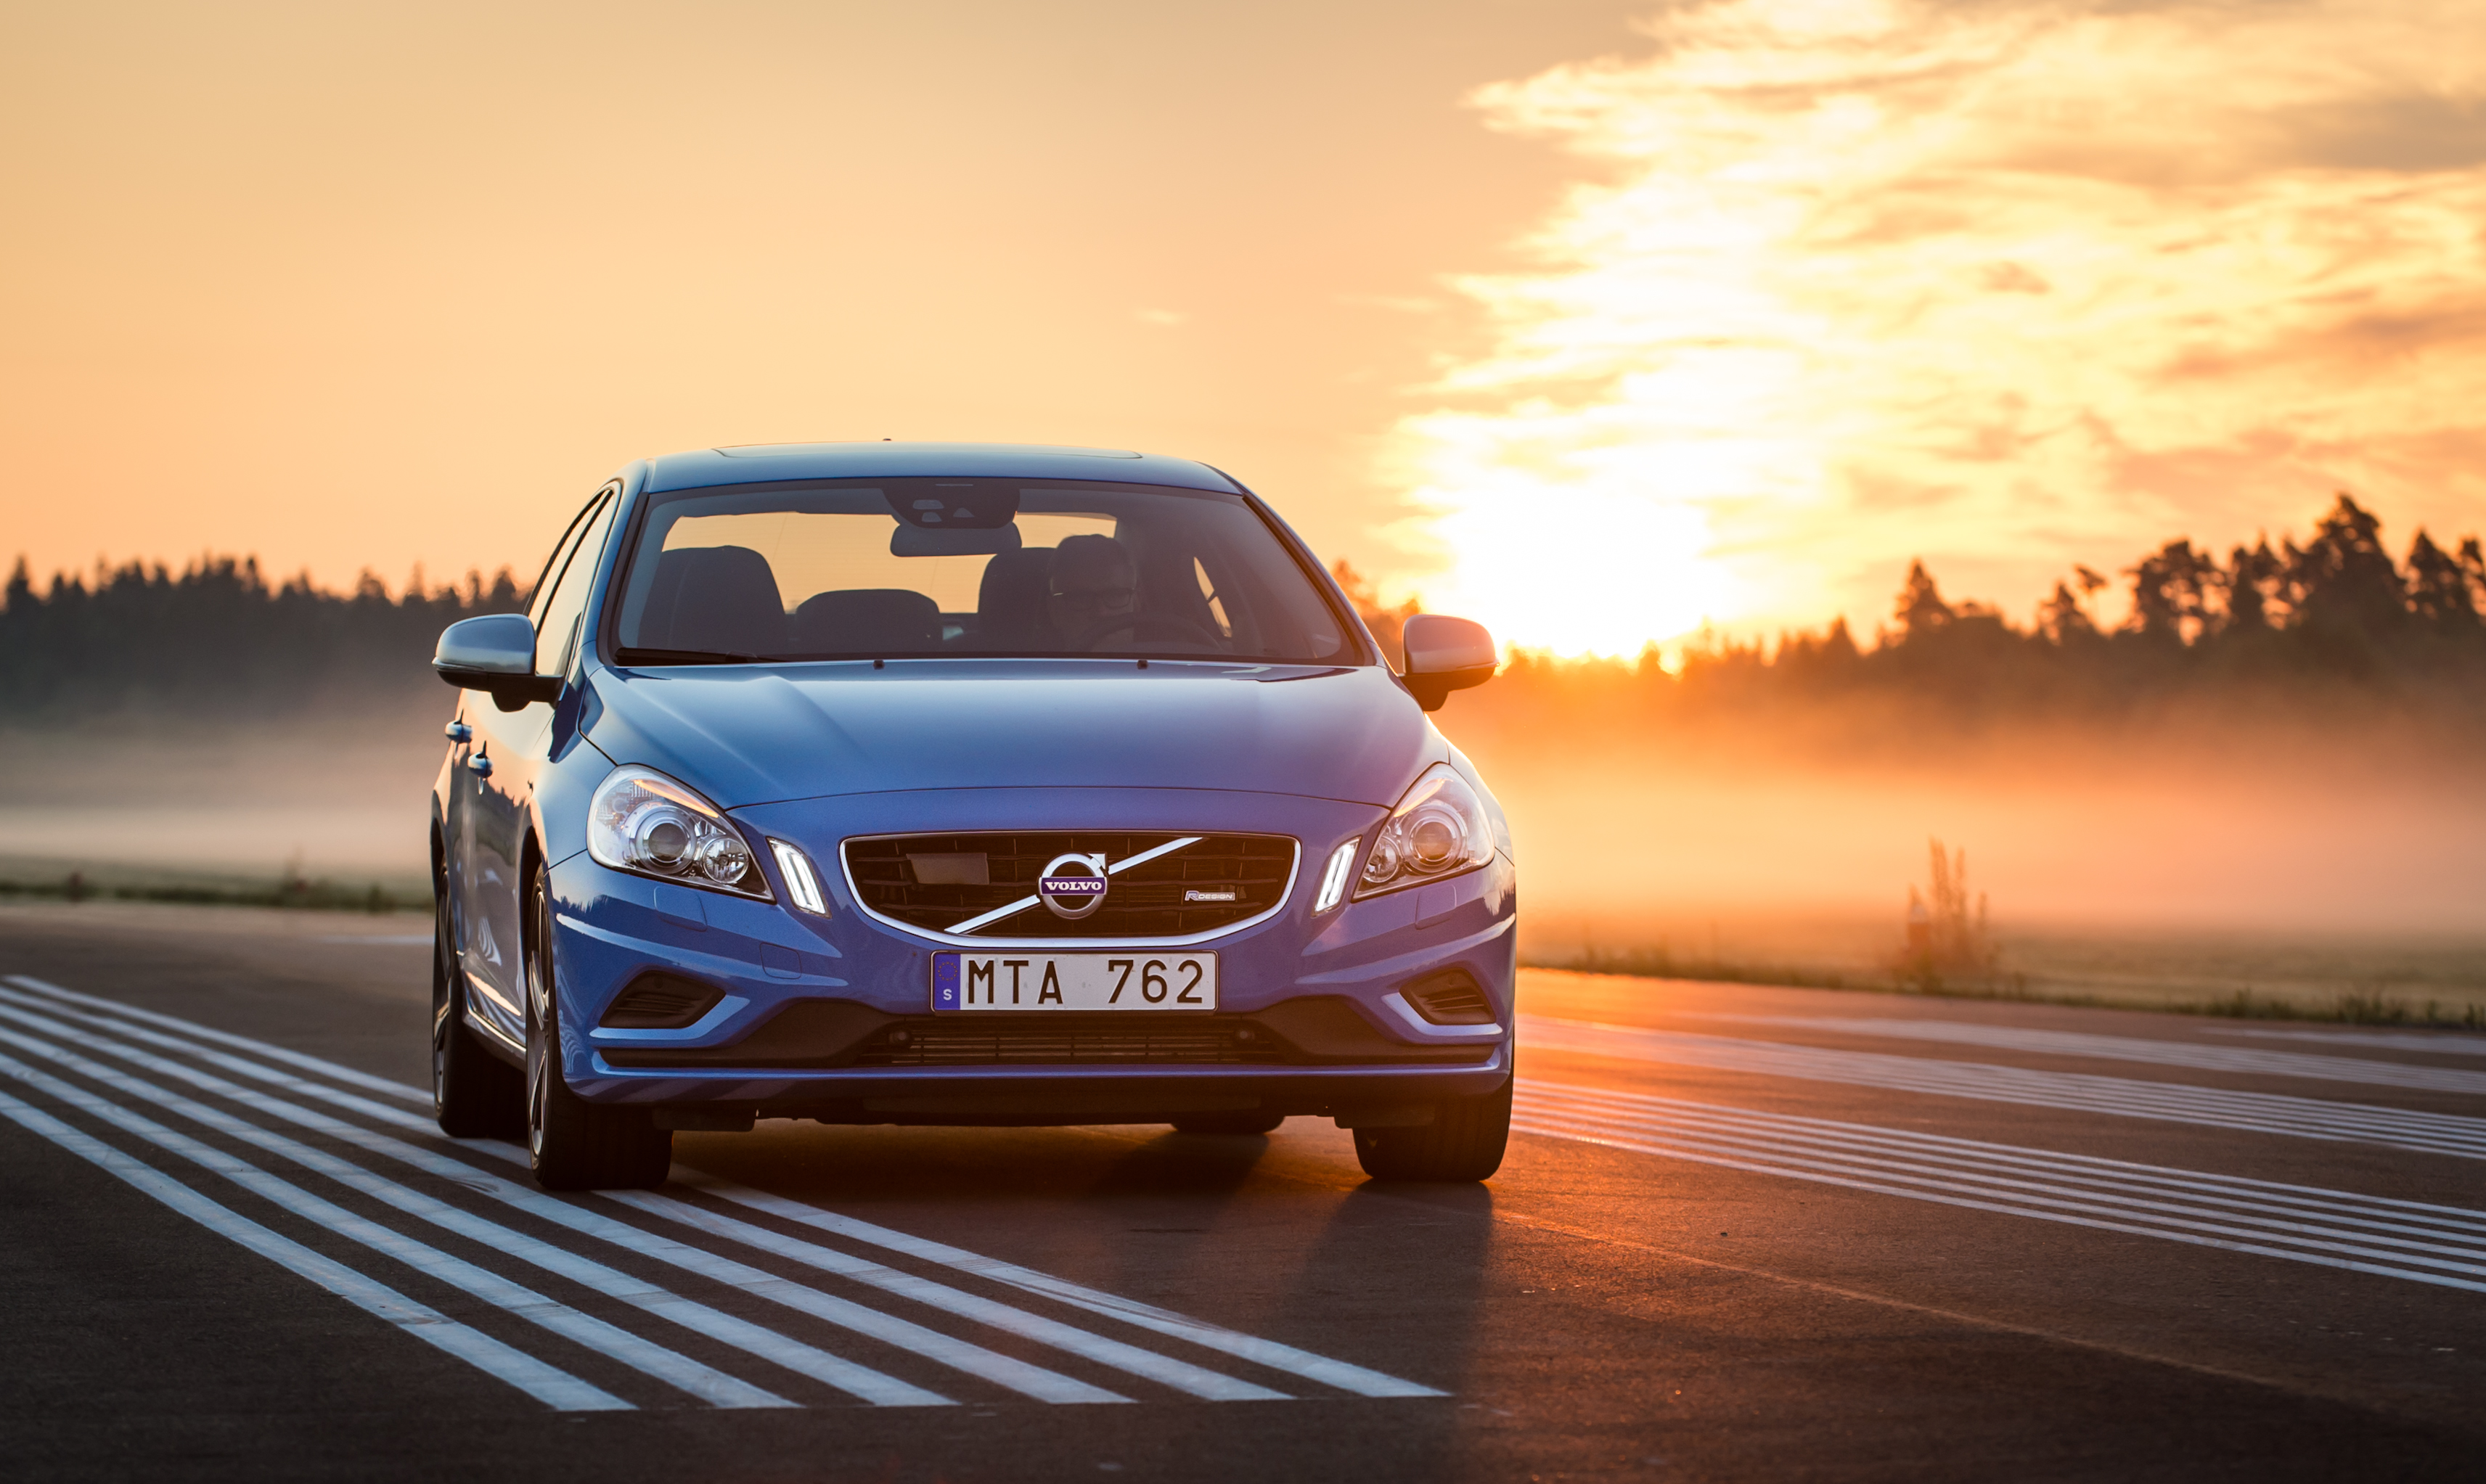 Download 2013 Volvo S60 pictures in high definition or widescreen 3425x2045